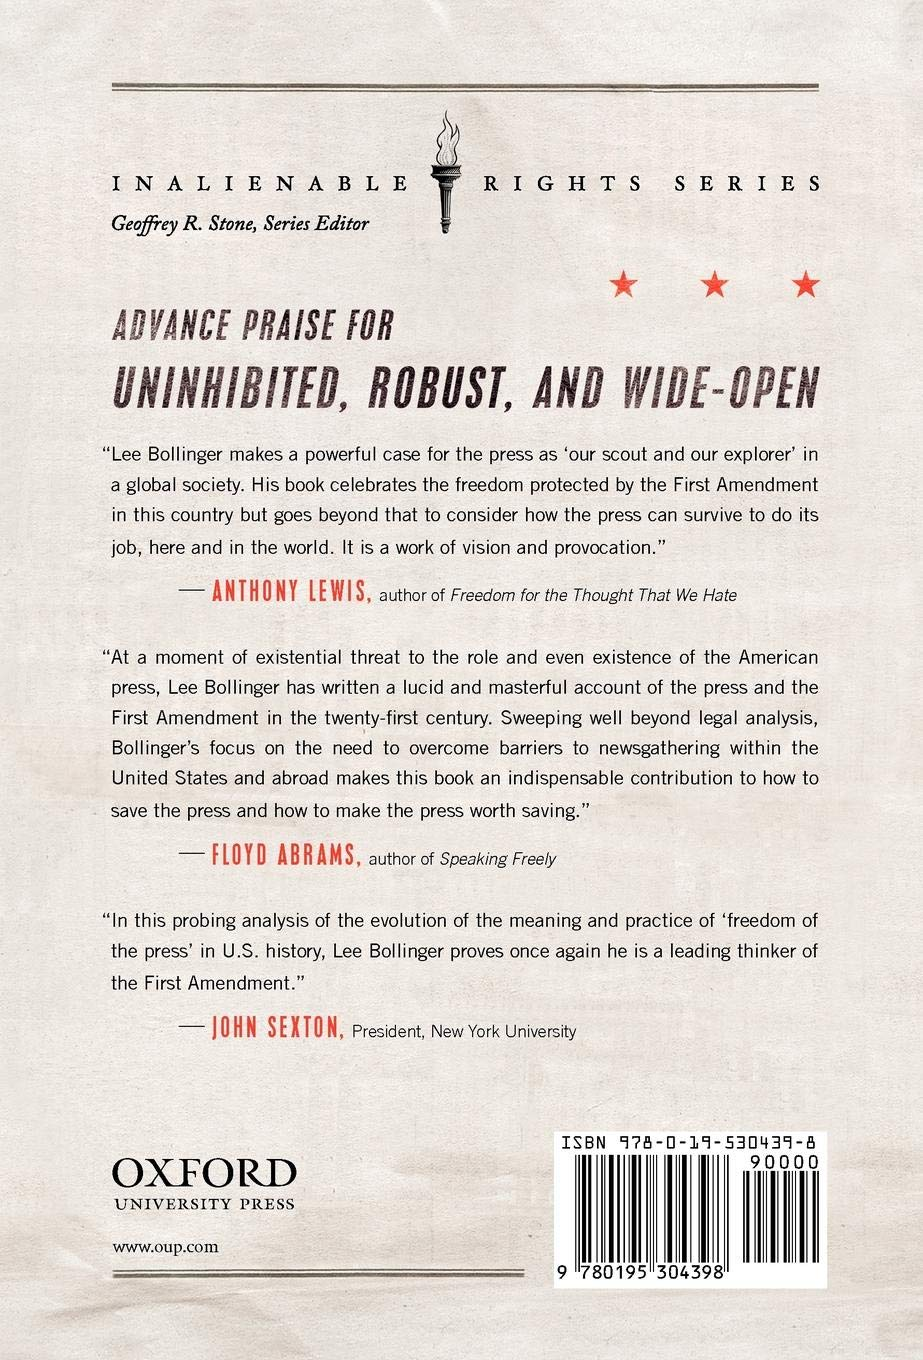 Uninhibited, Robust, and Wide-Open: A Free Press for a New Century (Inalienable Rights Series)